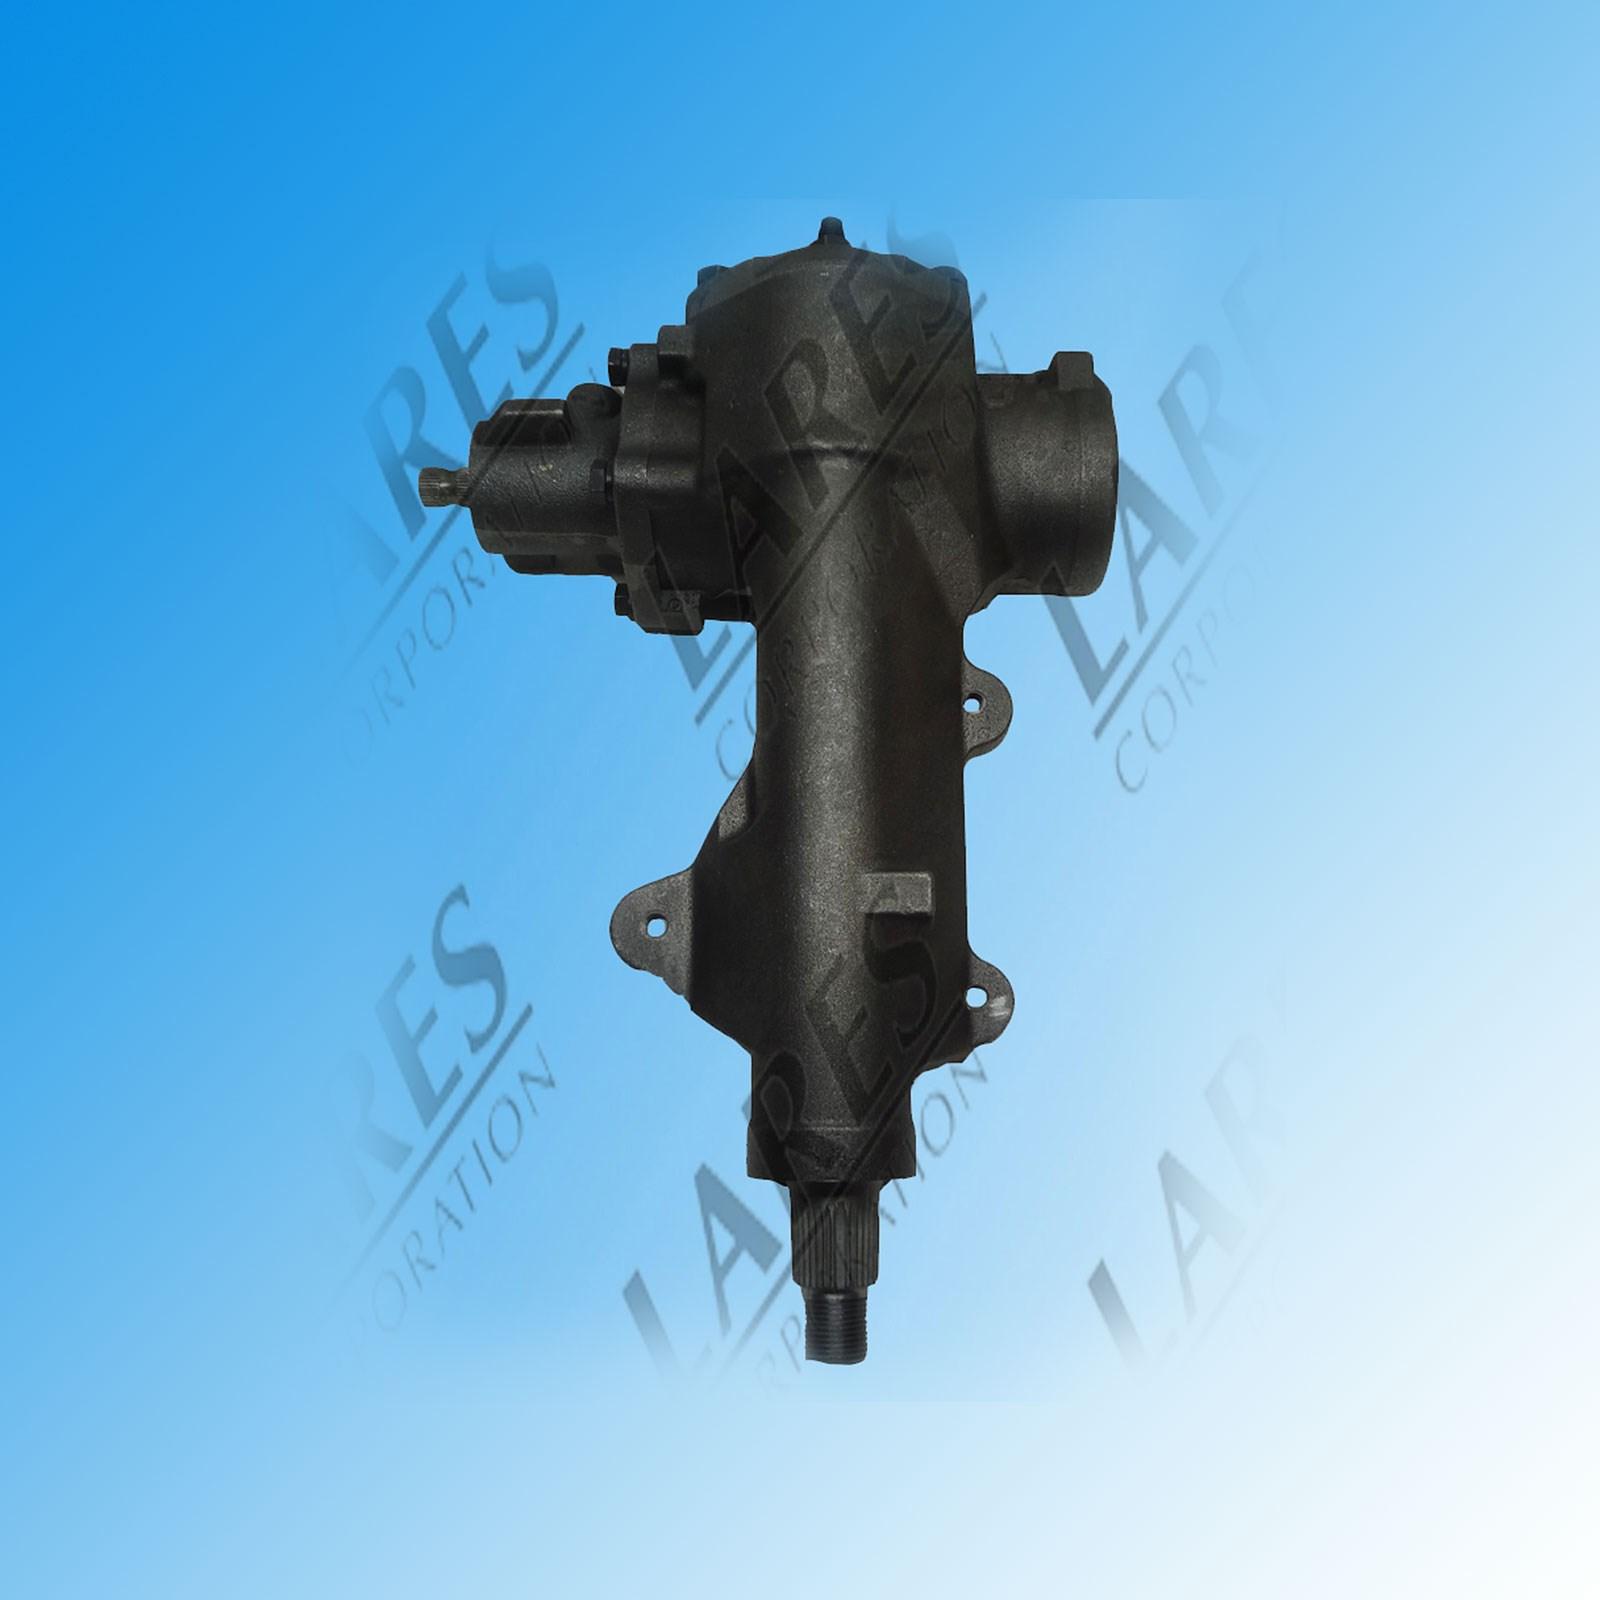 Power Steering Gear, Part No. 11060-a